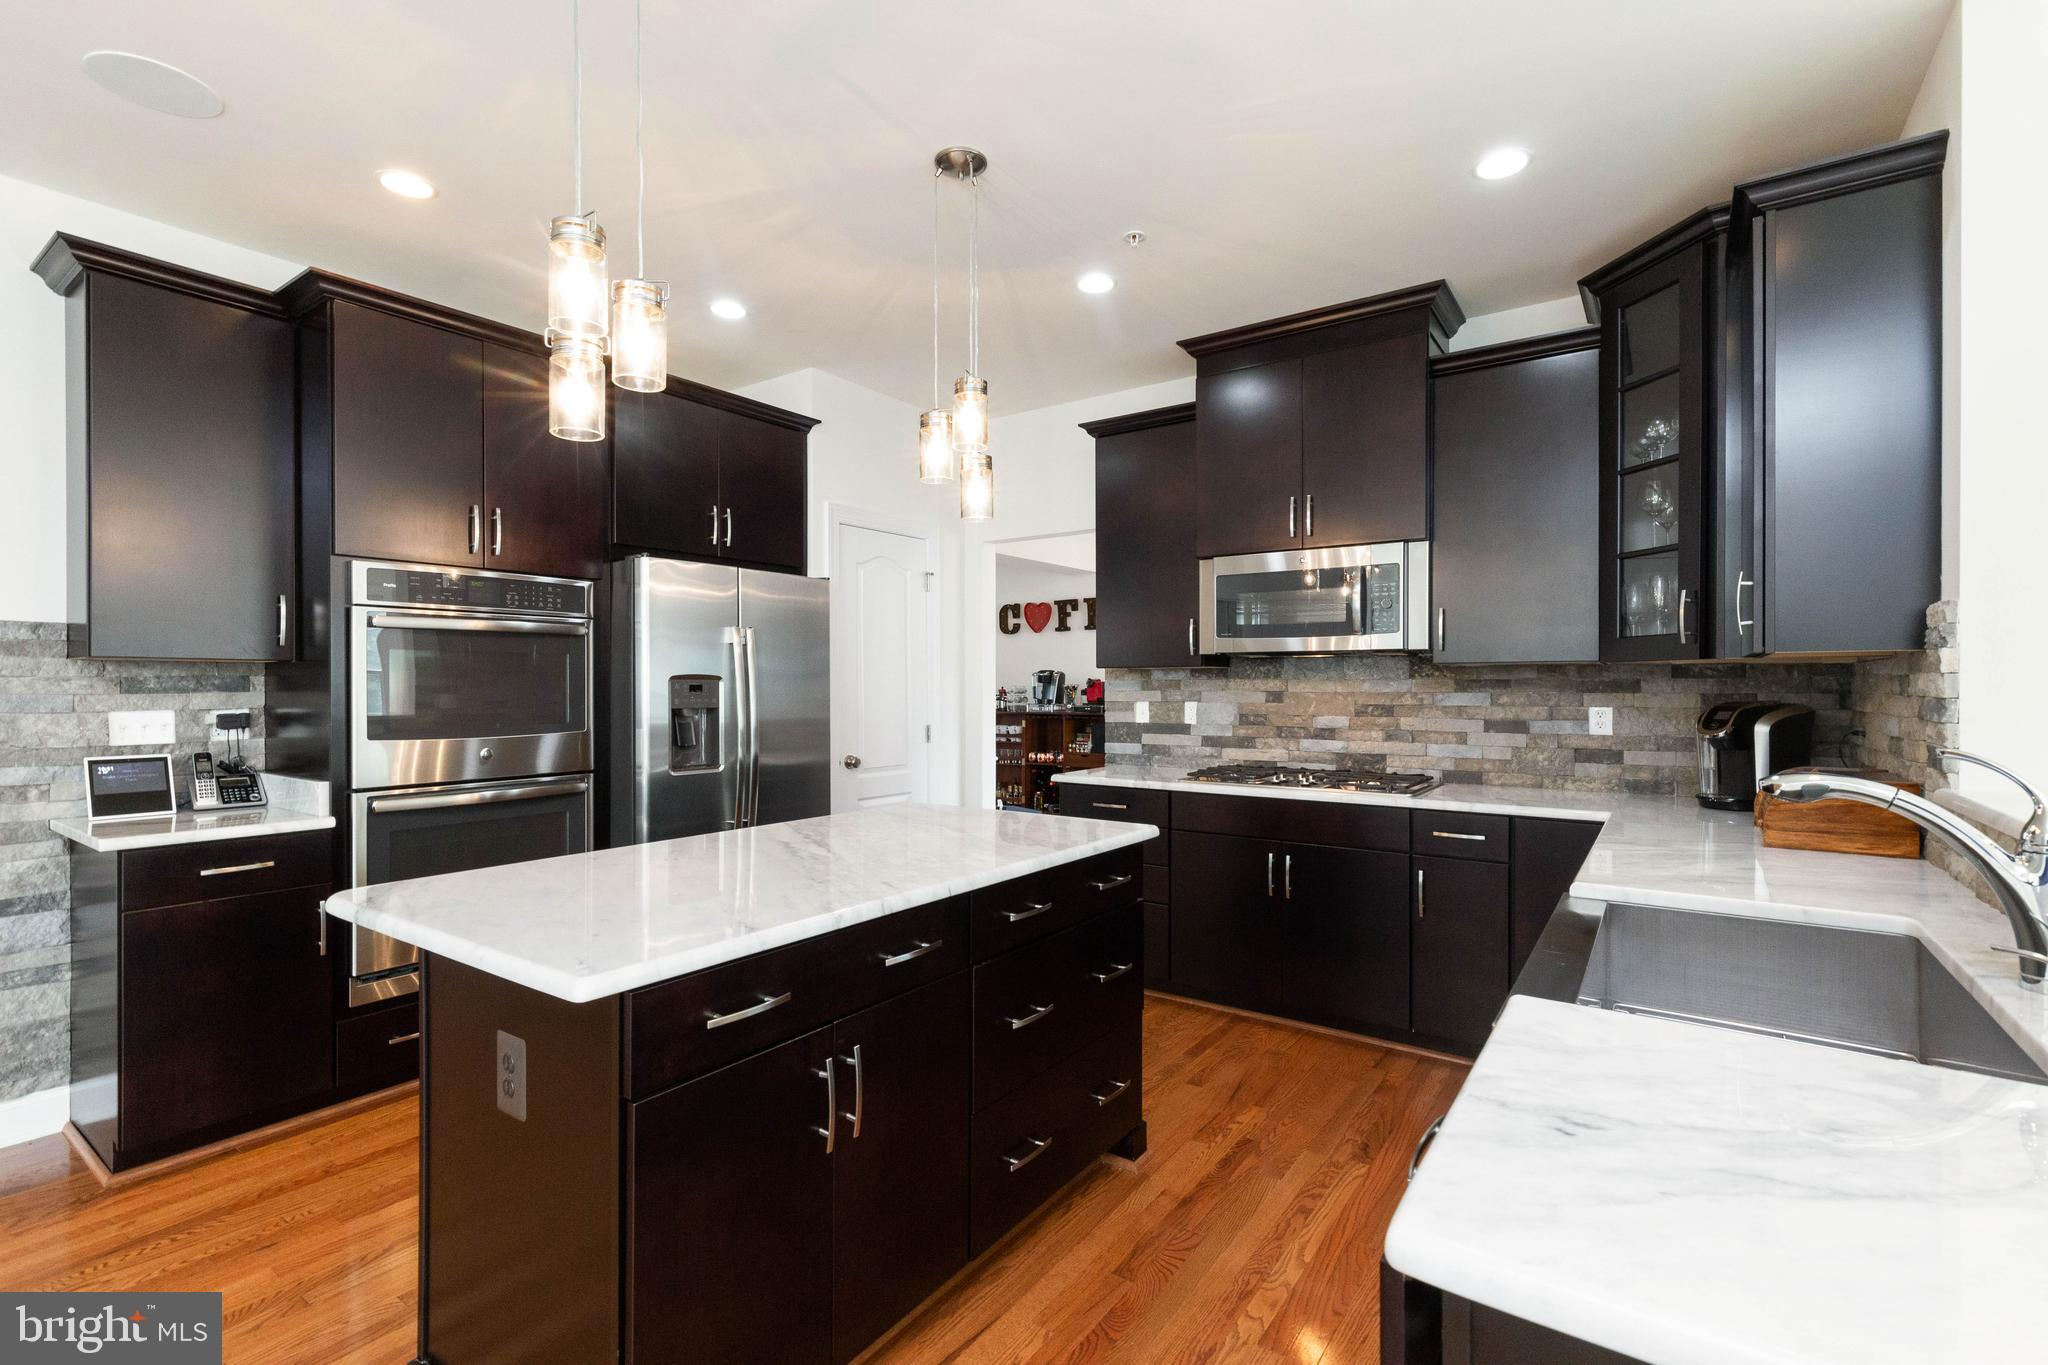 4516 BRIDLE RIDGE ROAD, UPPER MARLBORO, MD 20772